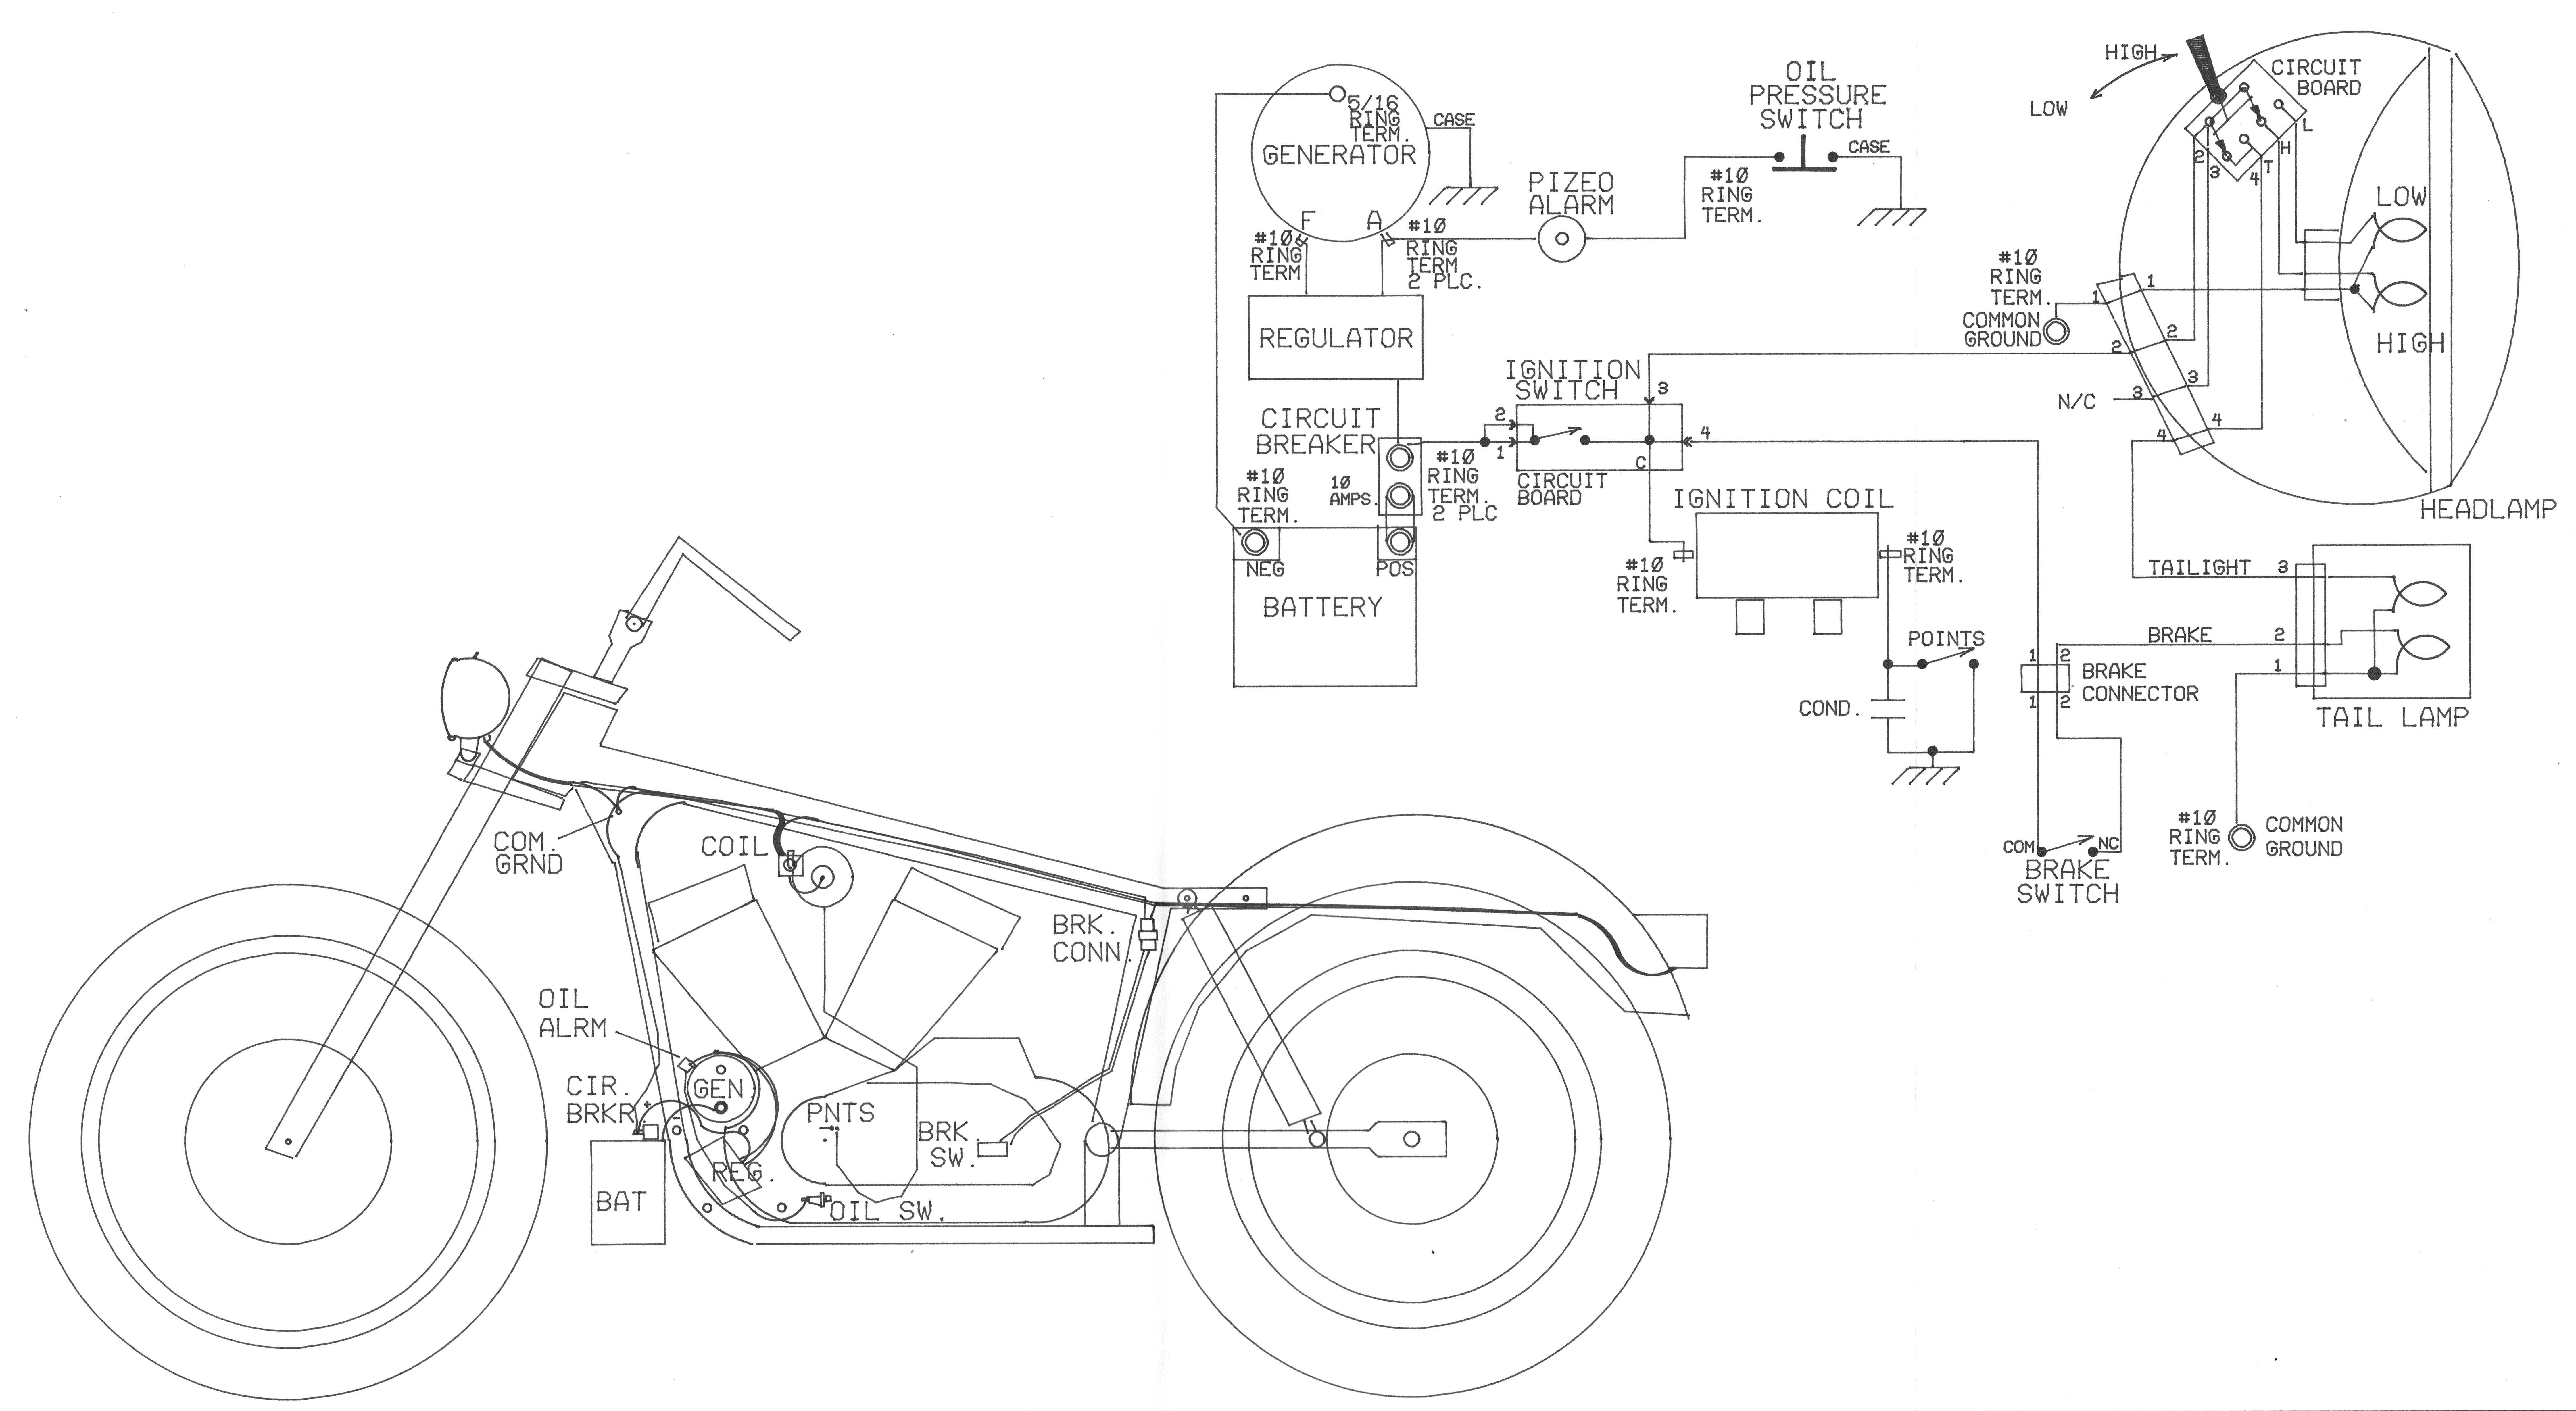 2003 harley sportster 883 wiring diagram honeywell rth2300 thermostat 1987 library